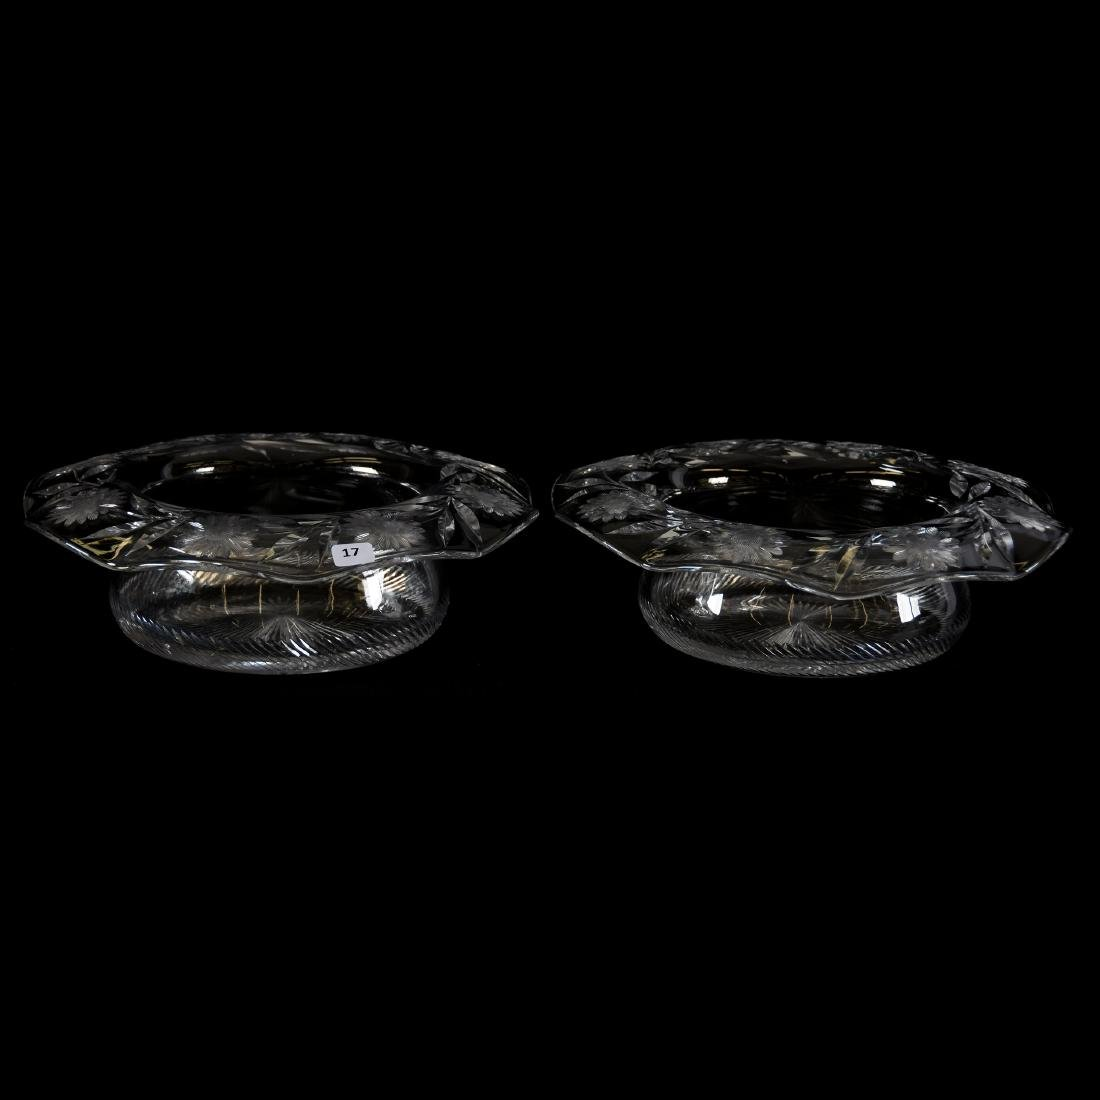 Pair Bowls, Engraved Floral Border, Ray Cut Center